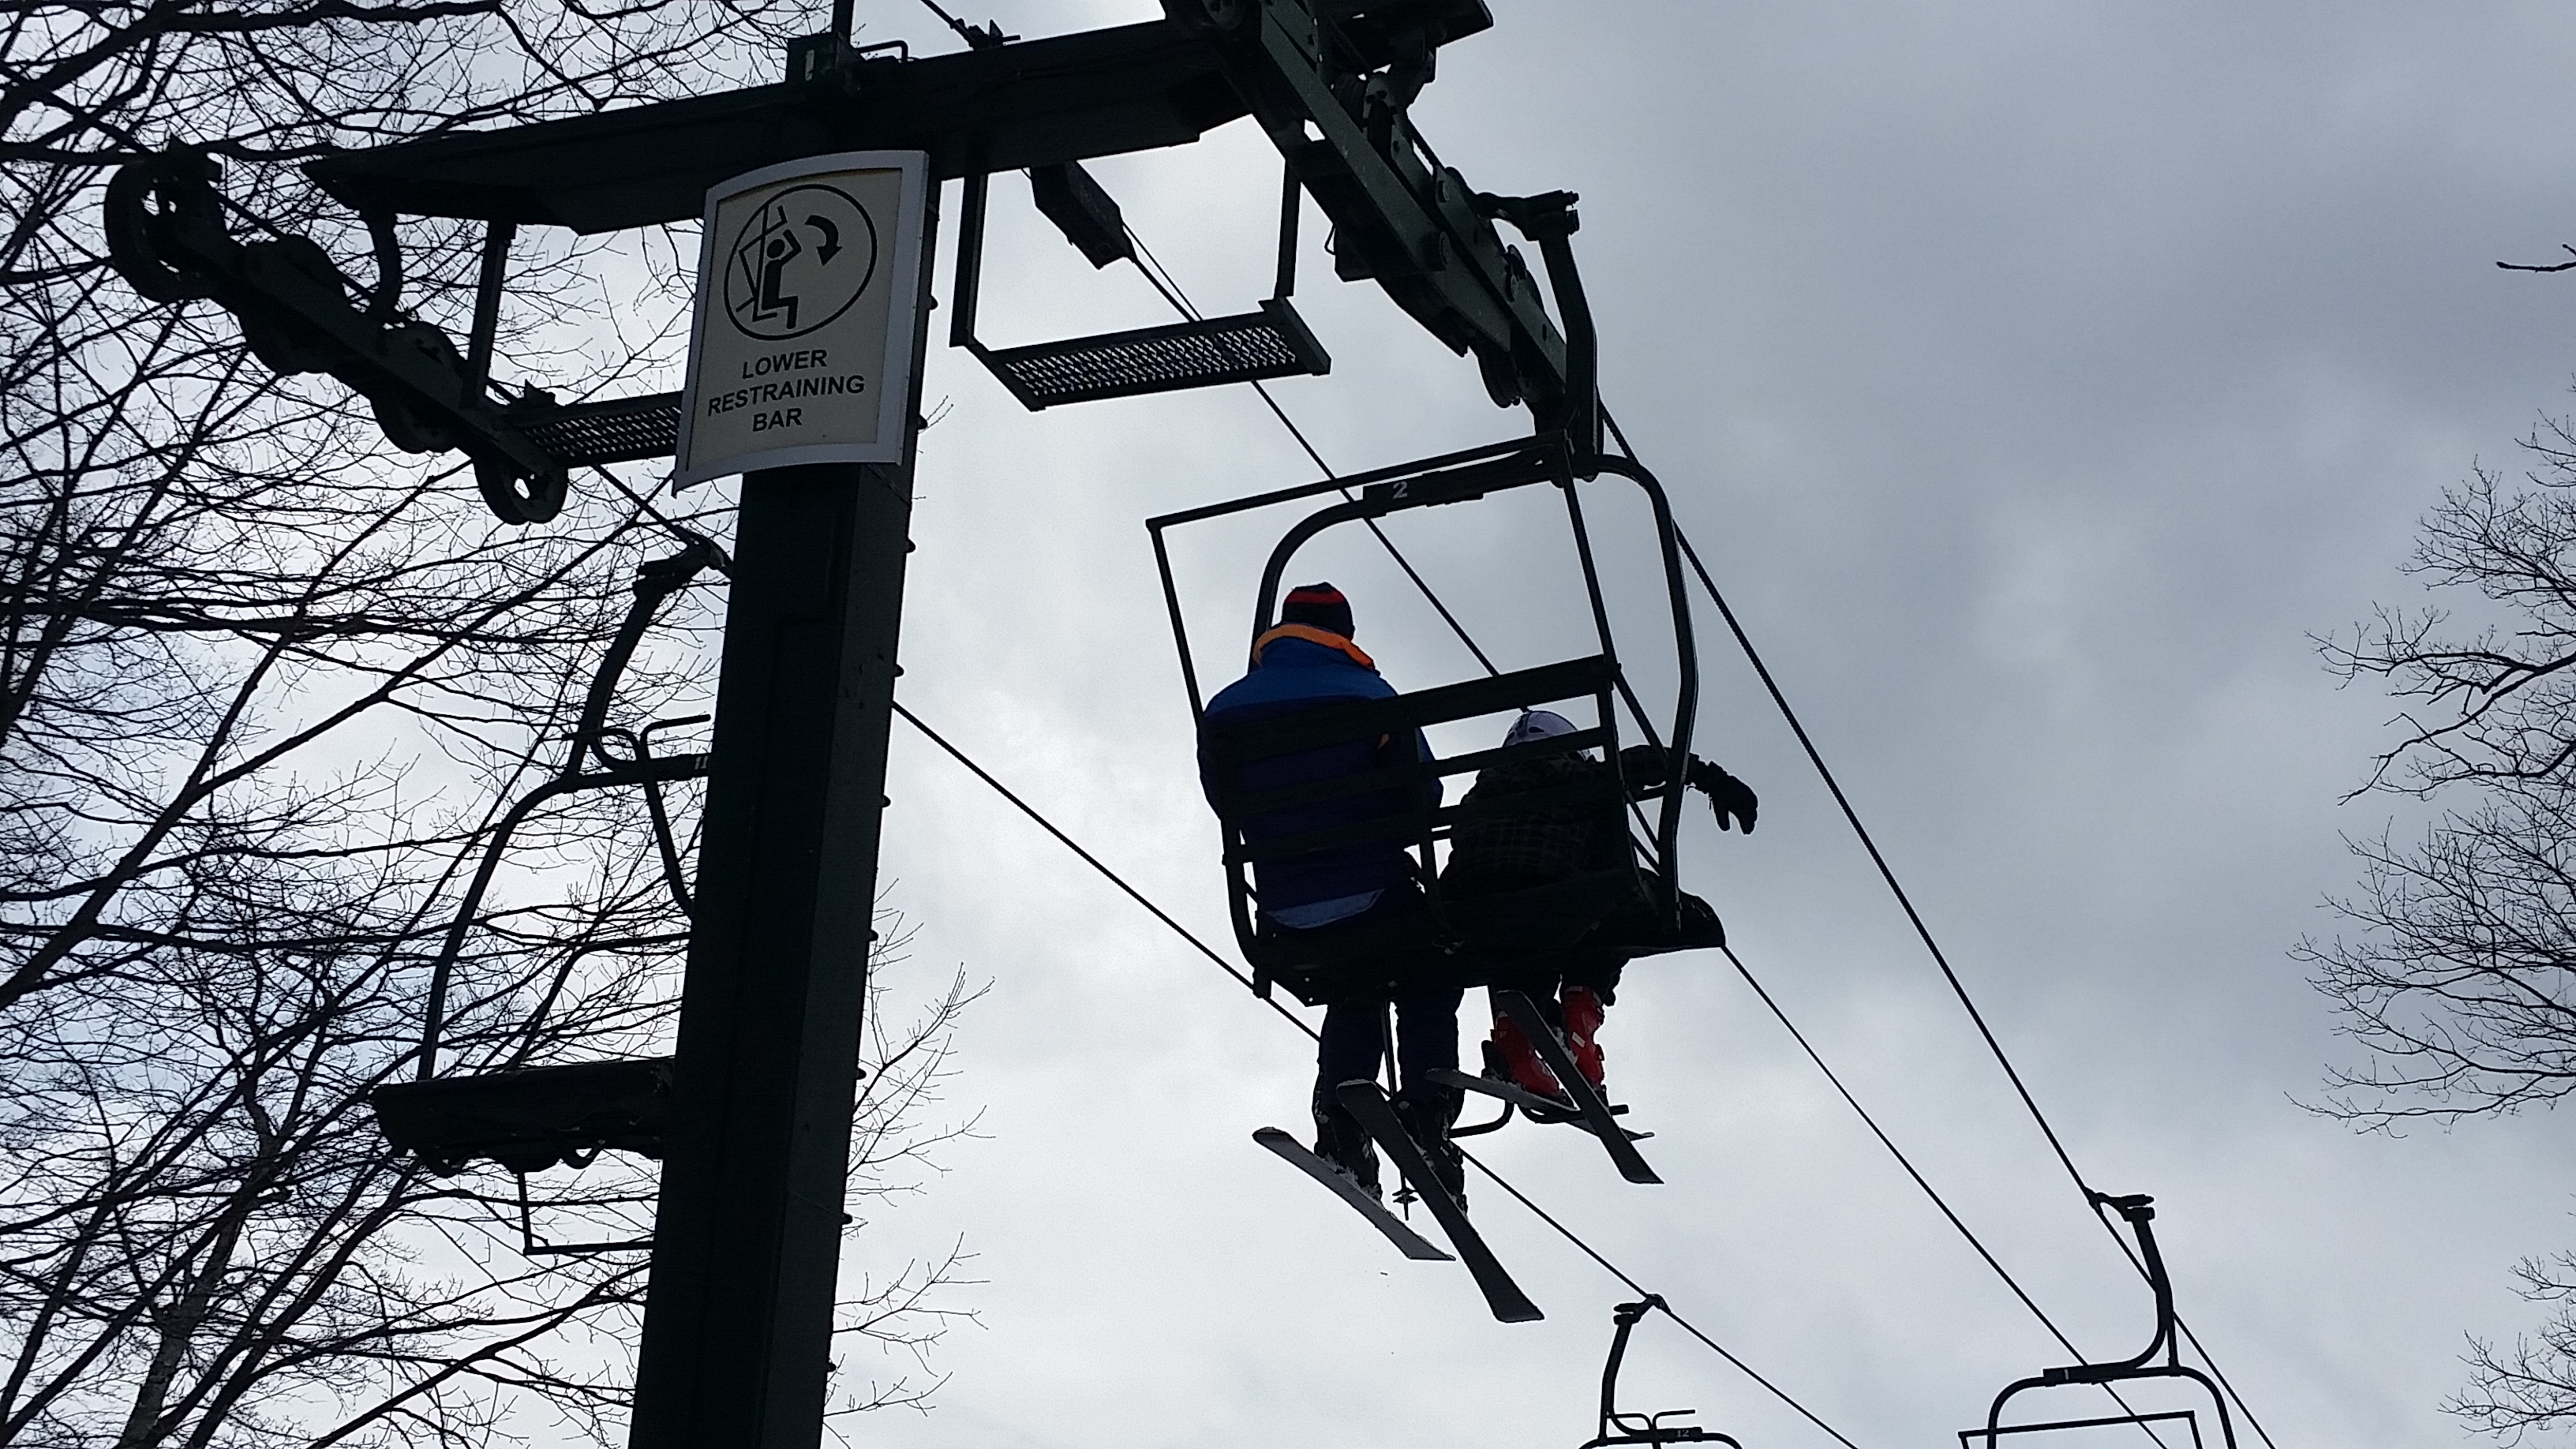 Adult and child on ski lift at Wintergreen Resort in Virginia